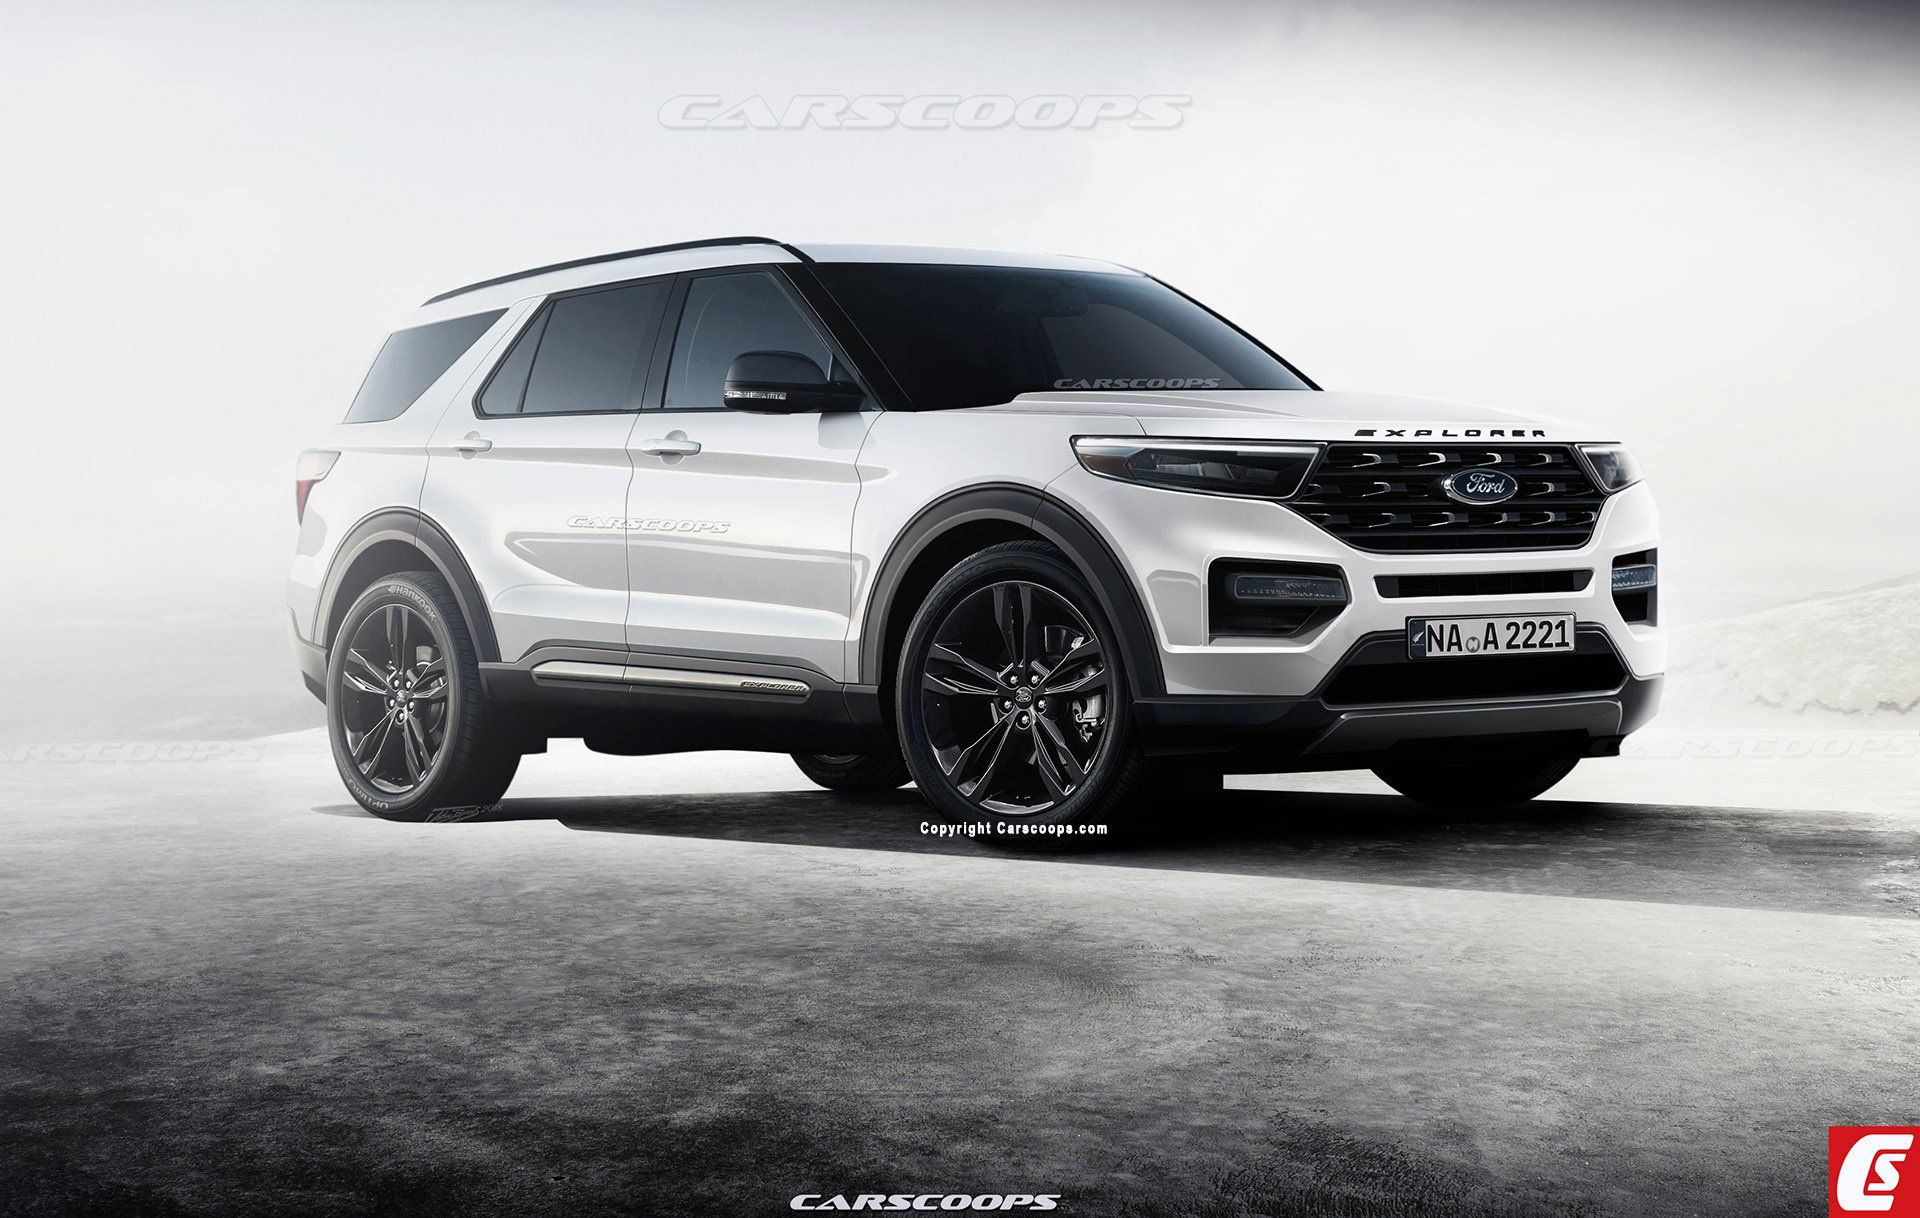 2020 Ford Explorer Sports With Images 2020 Ford Explorer Ford